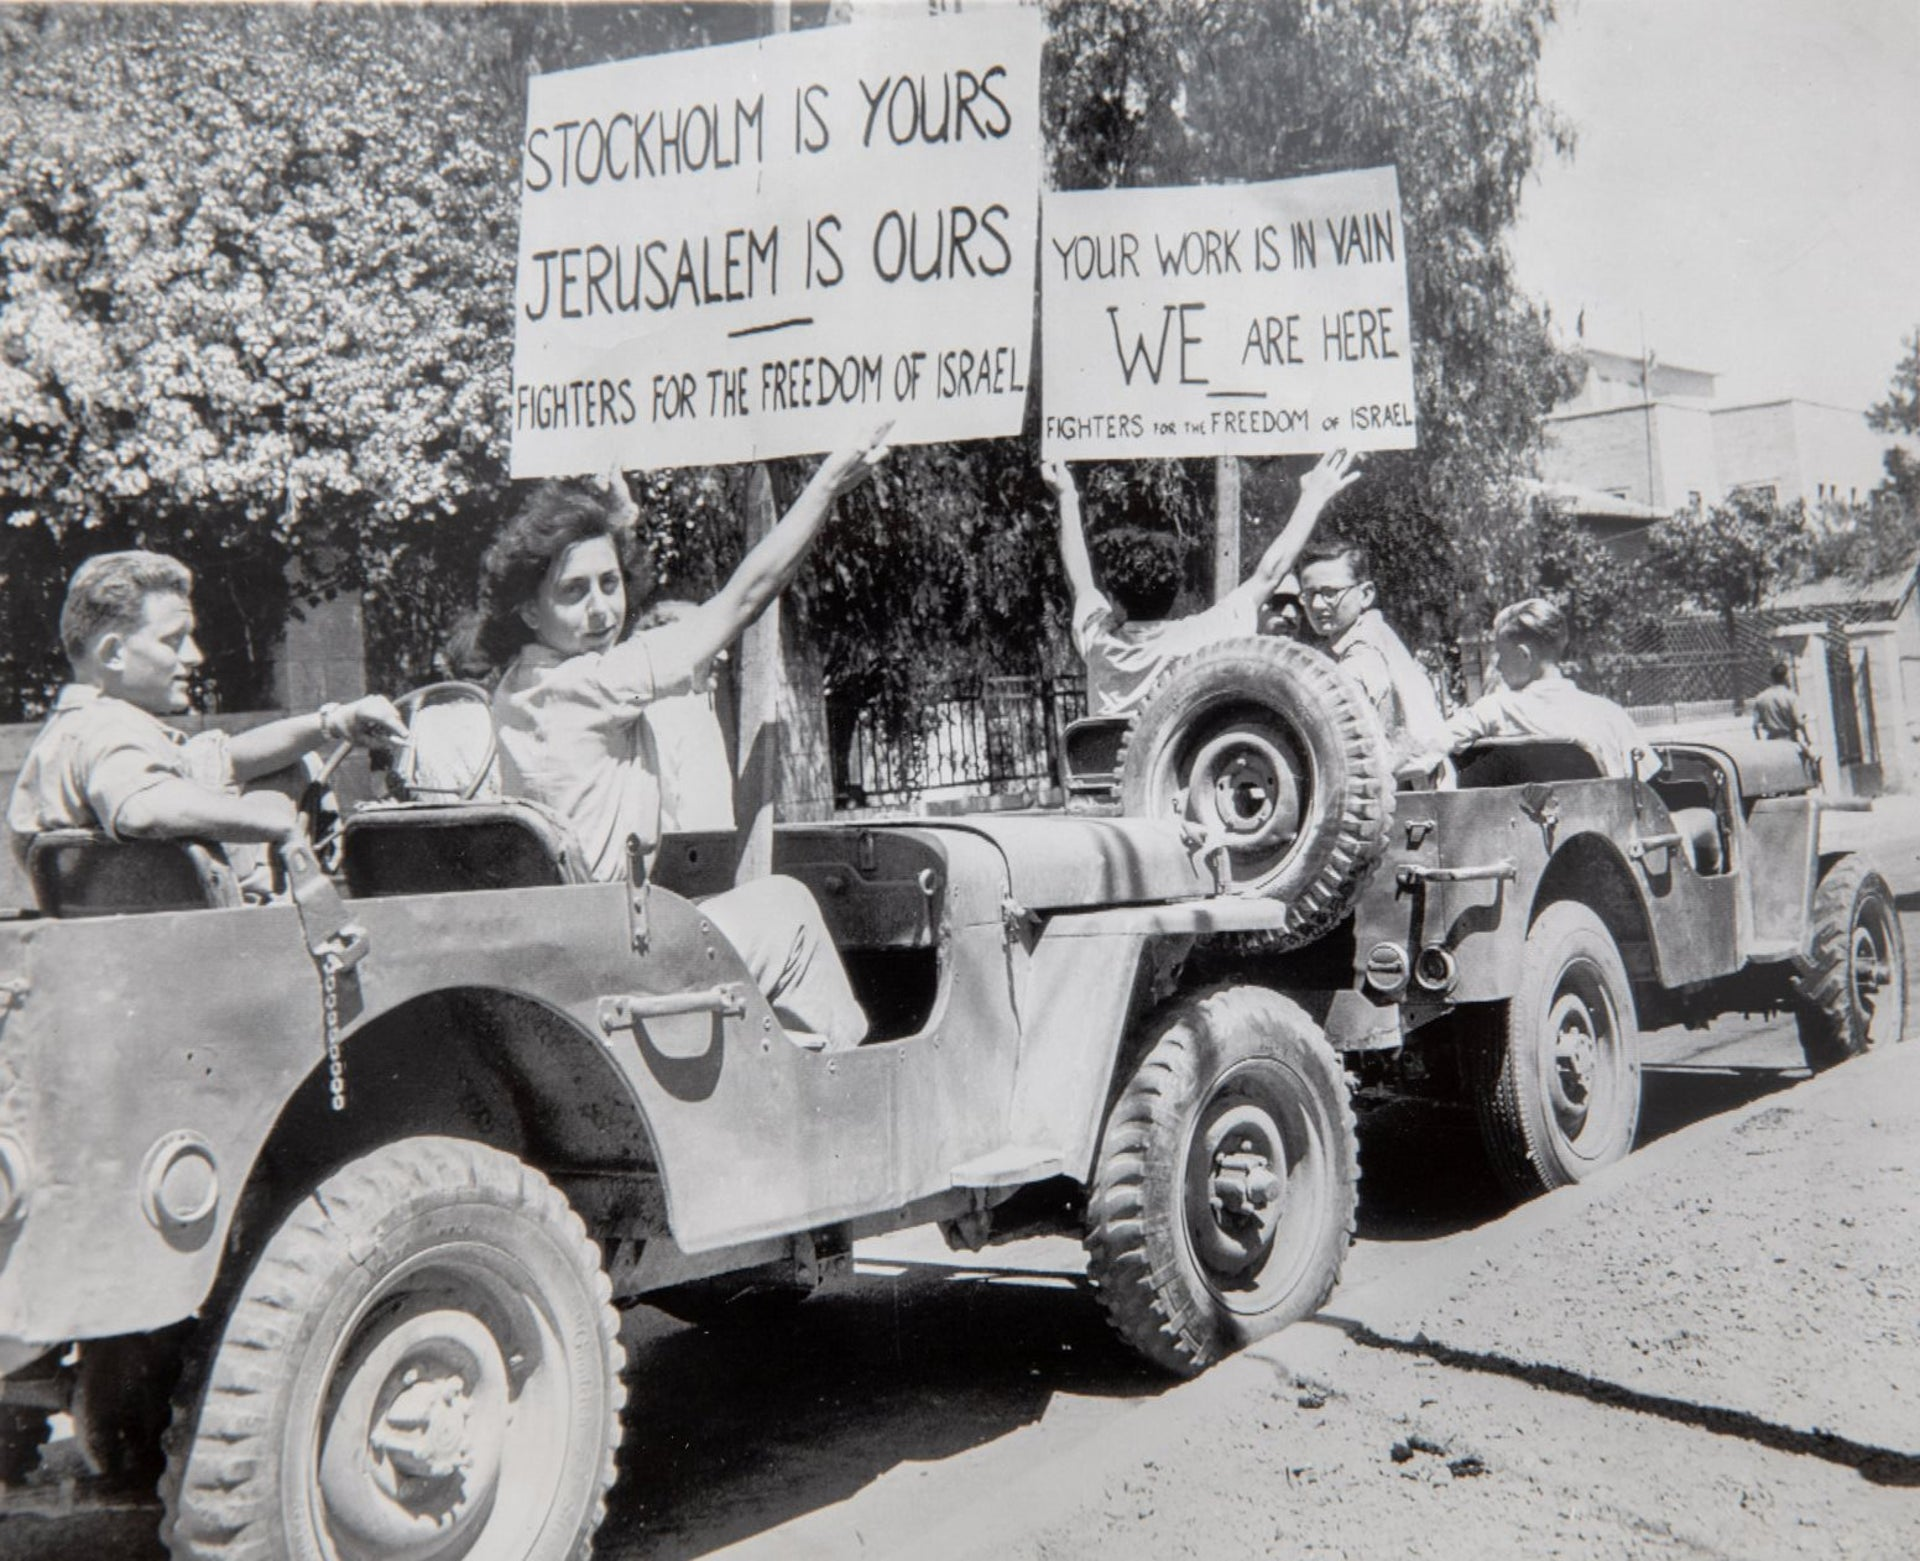 Members of the Lehi Pre-state underground militia display placards from jeeps parked near the Belgium Consulate in Jerusalem as they await the arrival of Count Folke Bernadotte, UN Palestinian Mediator, August 20 1948.